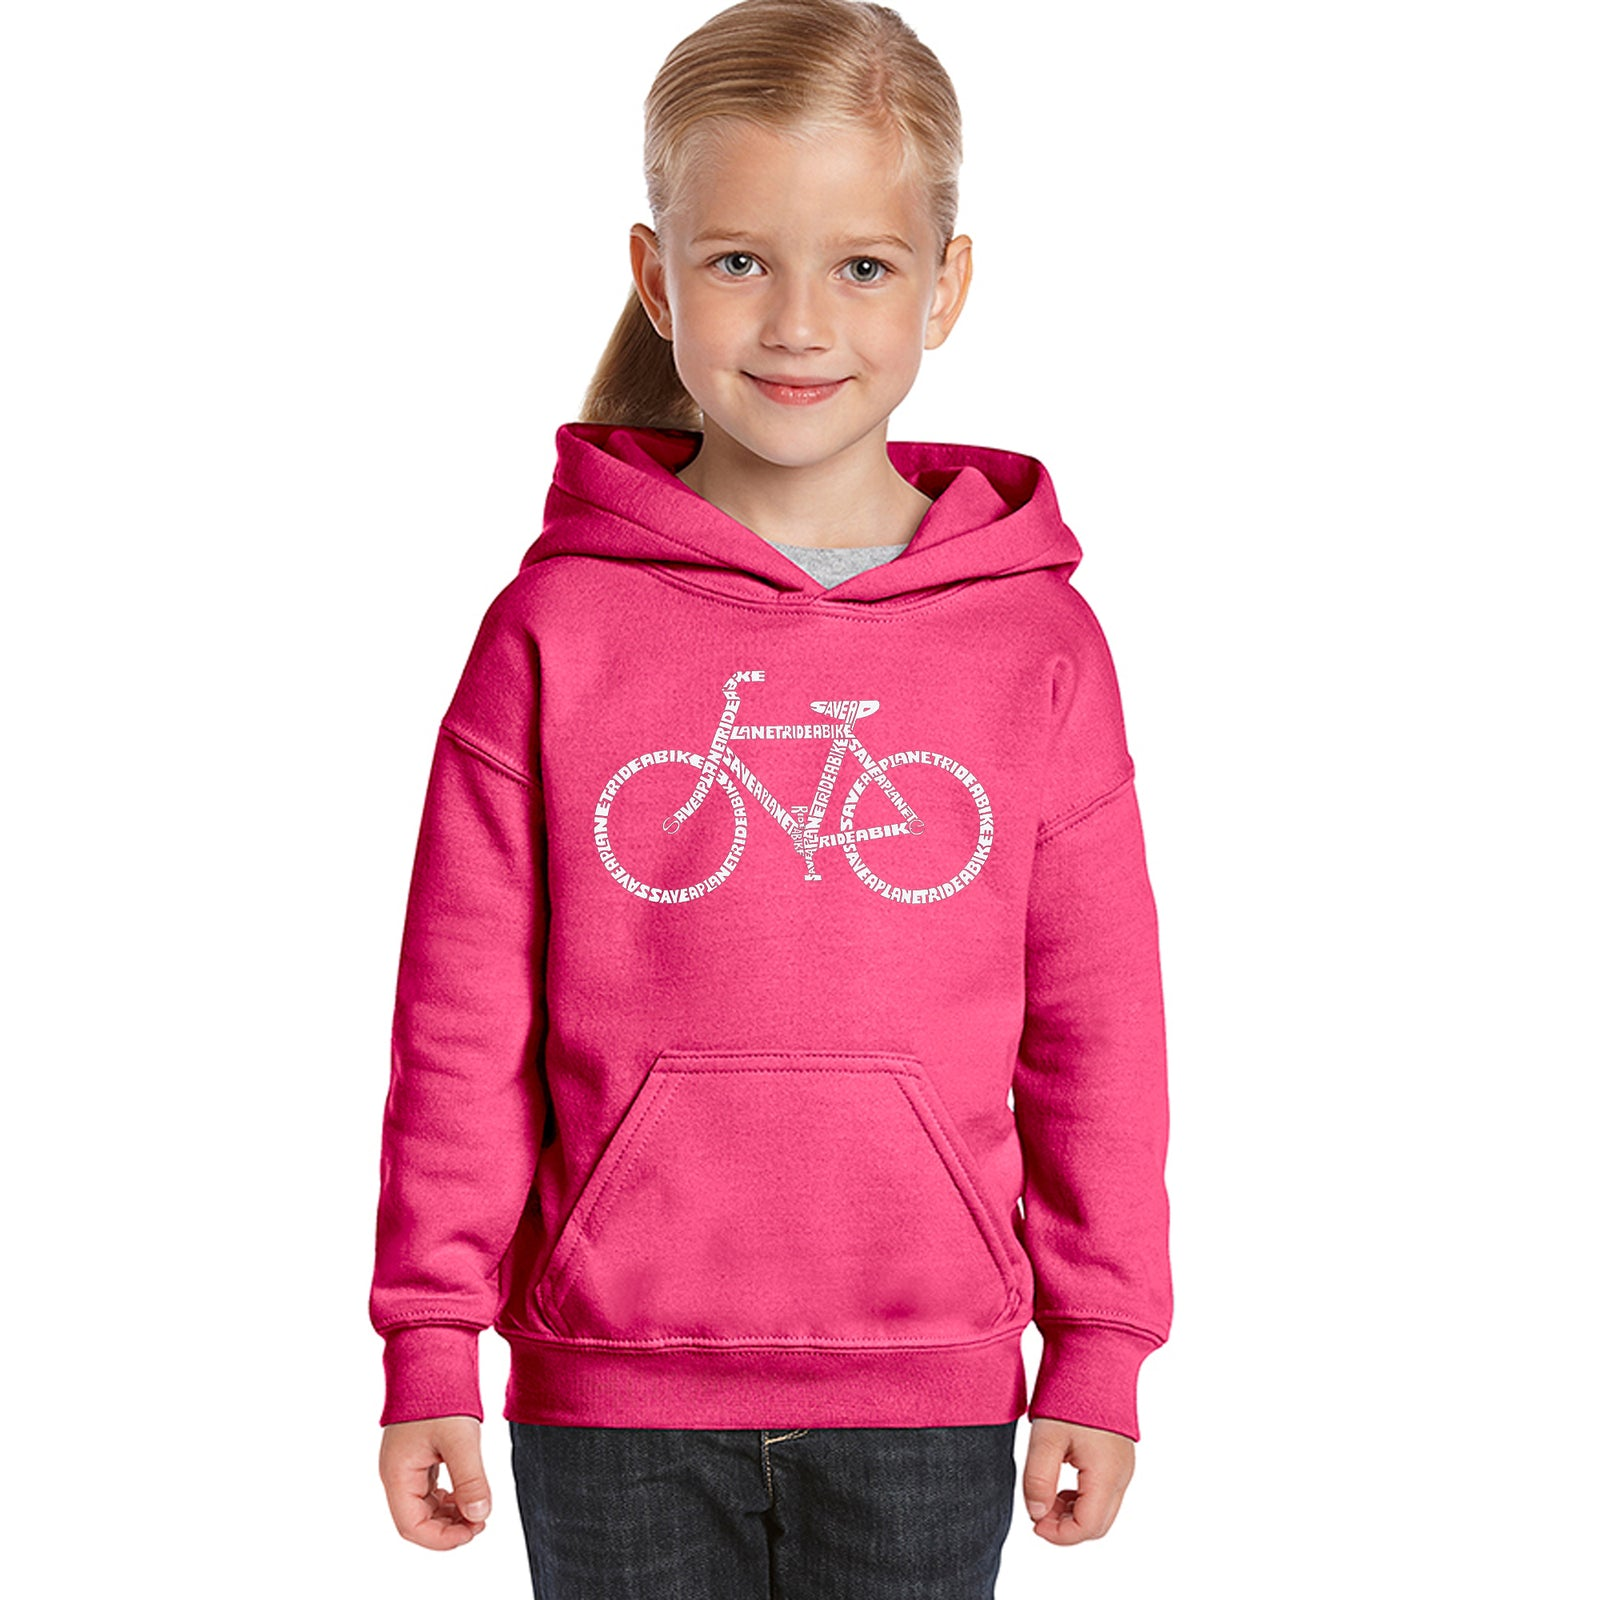 Girl's Hooded Sweatshirt - SAVE A PLANET, RIDE A BIKE